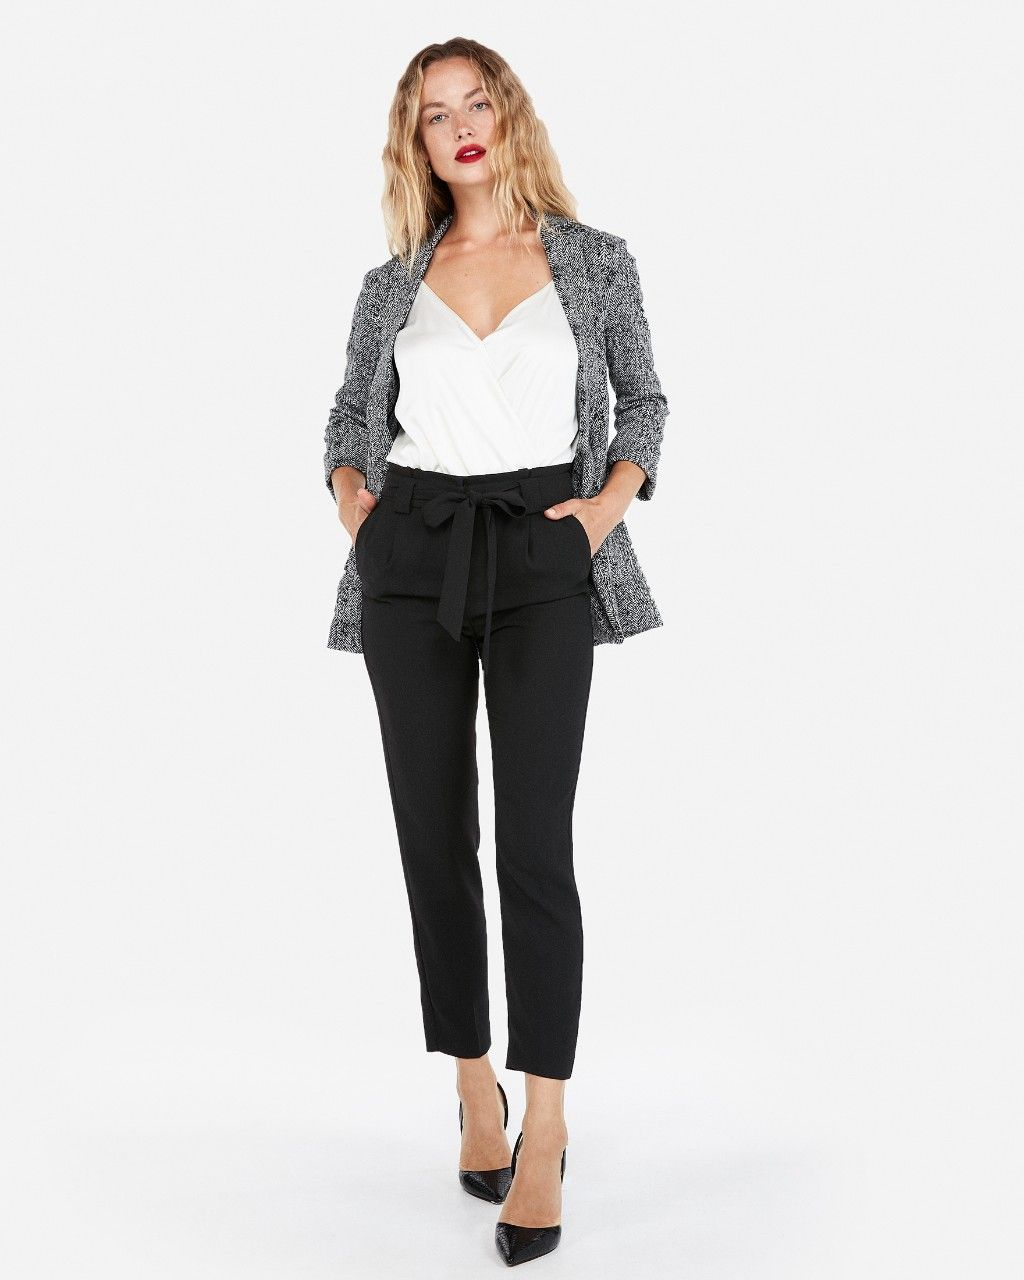 Meet Your New Summer Work Pants This Ankle Style Will Get You Ready For Warm Weather High Waisted Pants Outfit High Waisted Tie Pants High Waisted Dress Pants [ 1280 x 1024 Pixel ]